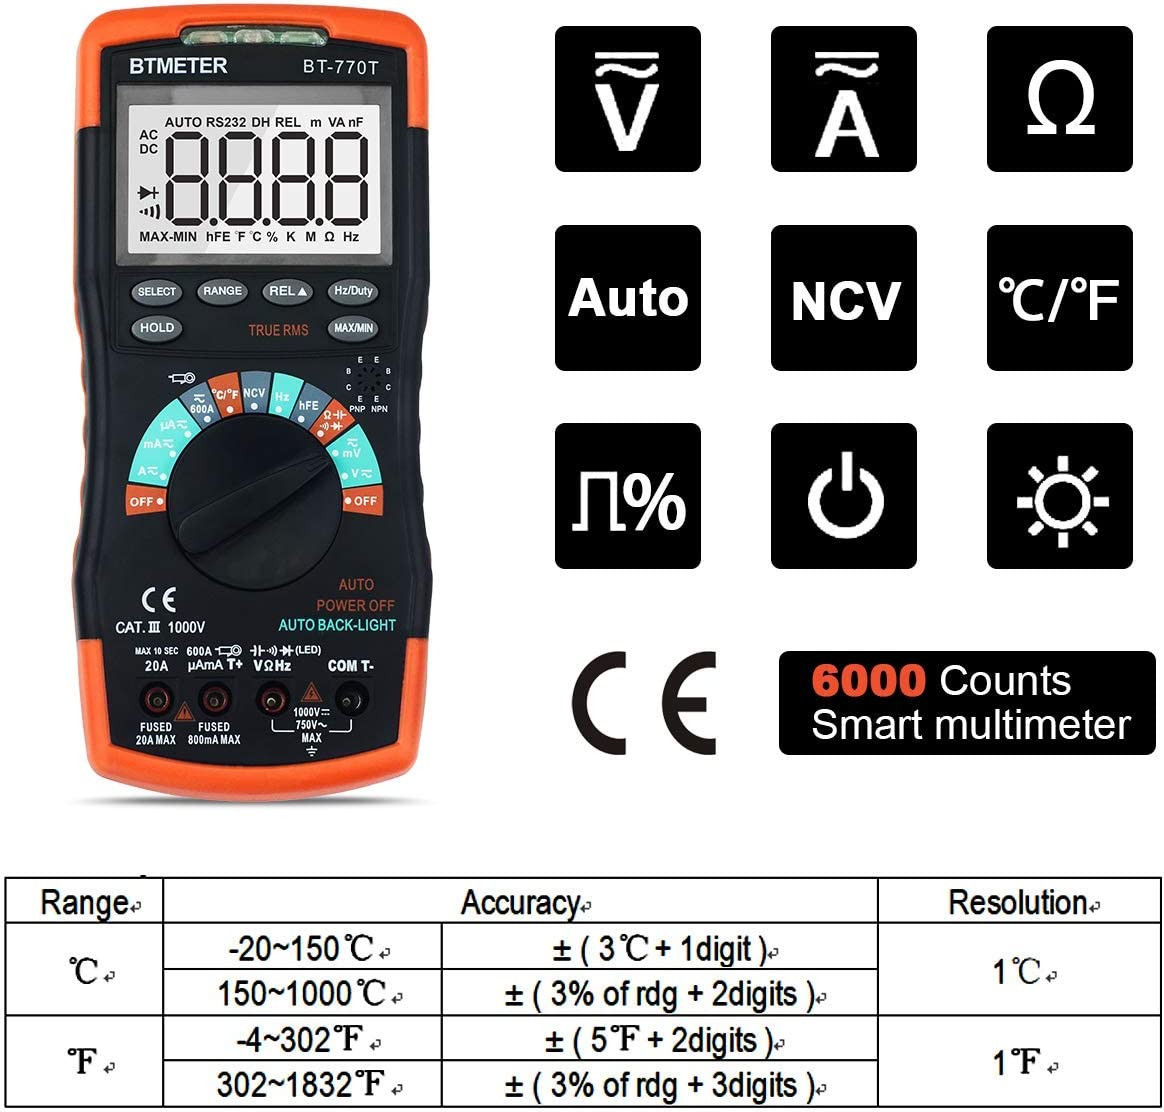 BTMETER Digital Multimeter BT-770S TRMS 6000 Counts Manual Ranging for AC DC Volt Amp Ohm Capacitance Frequency with Continuity Tester Auto Backlit for Automotive Hobbyist Electrical Home